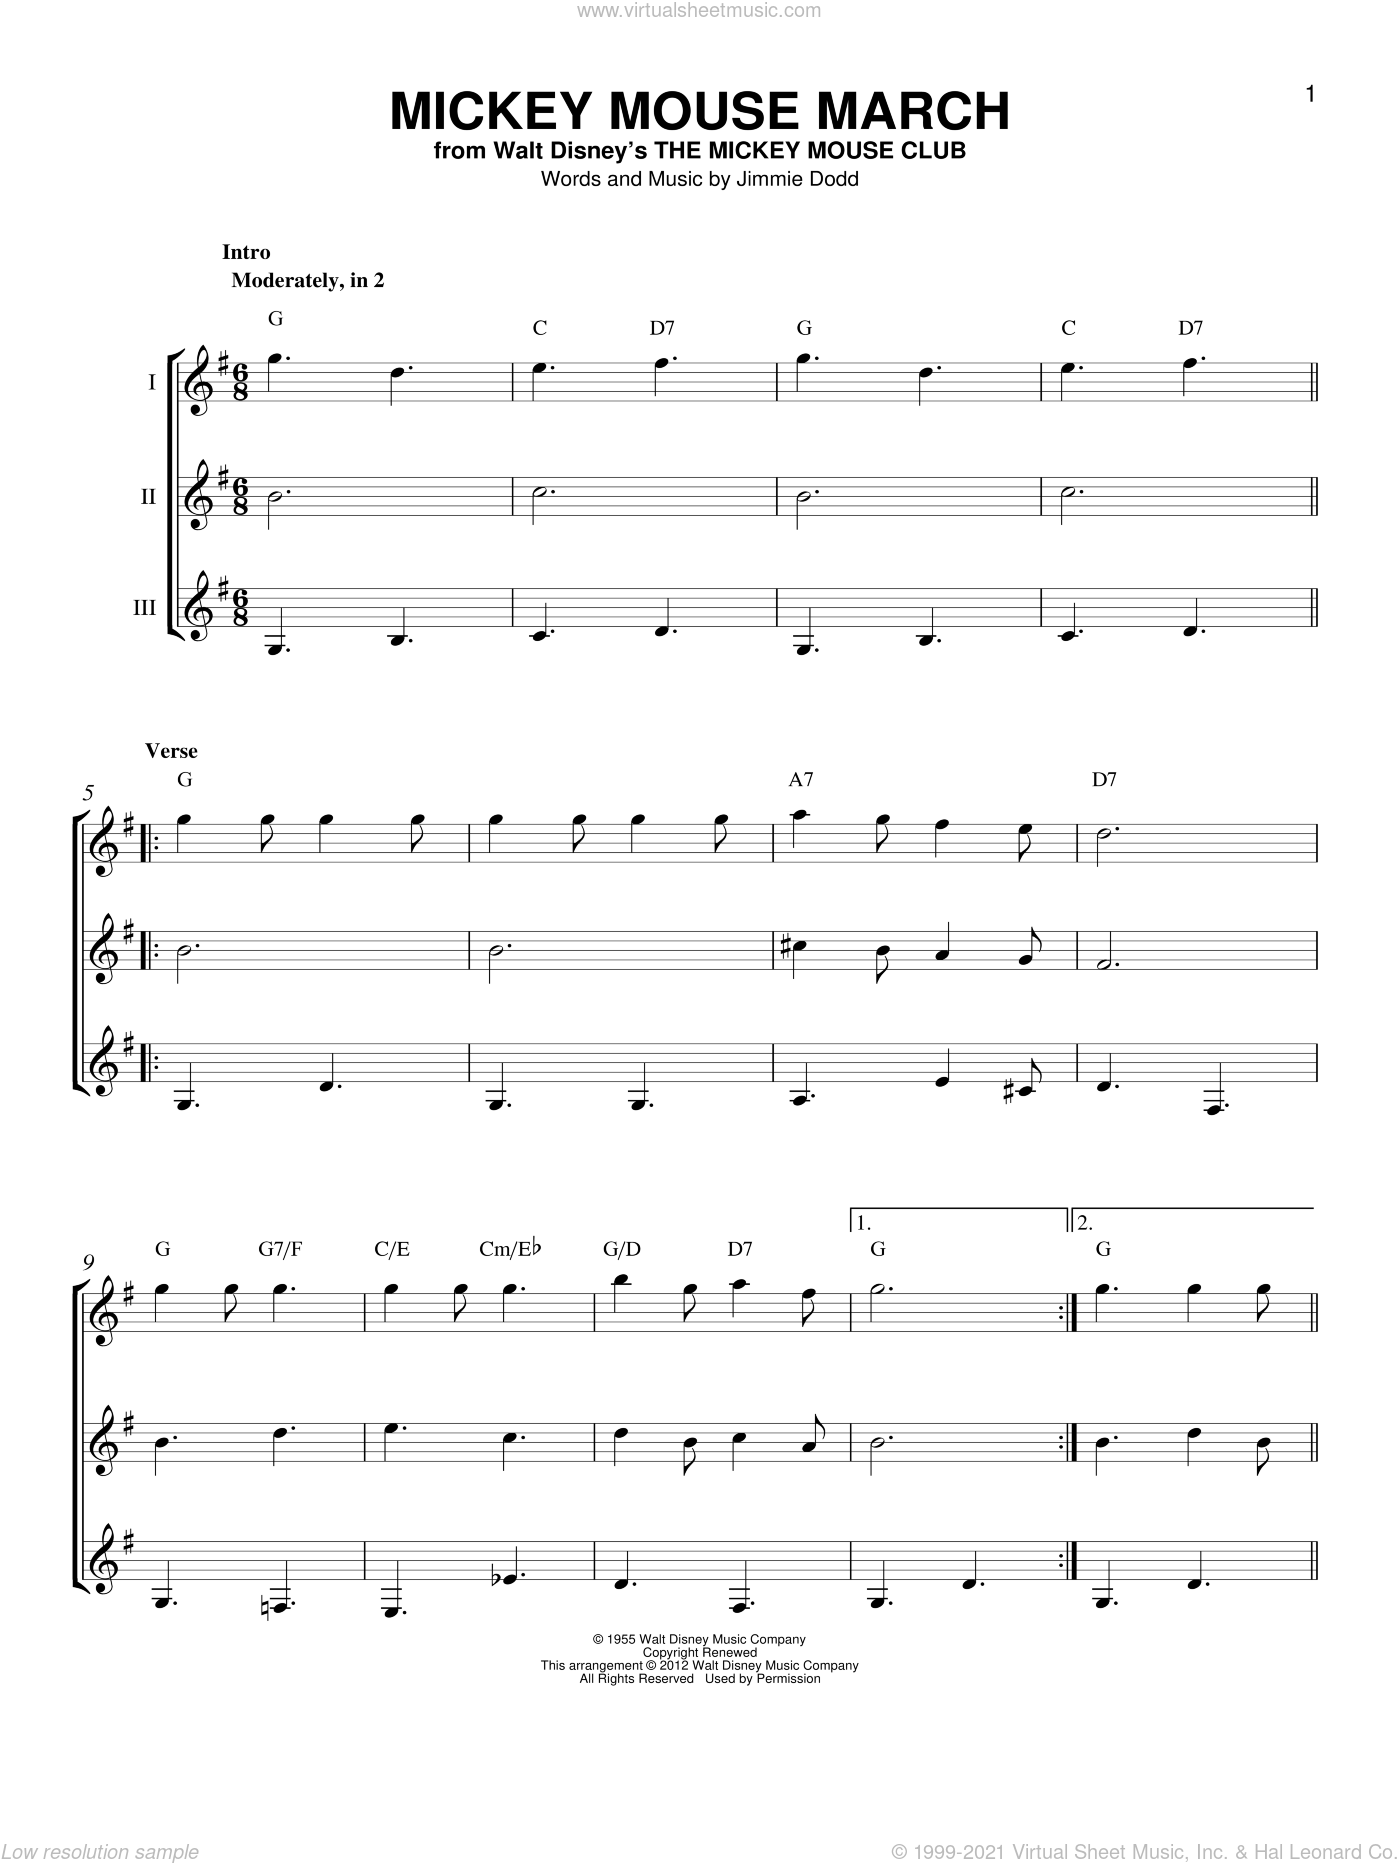 Mickey Mouse March sheet music for guitar ensemble by Jimmie Dodd, intermediate skill level